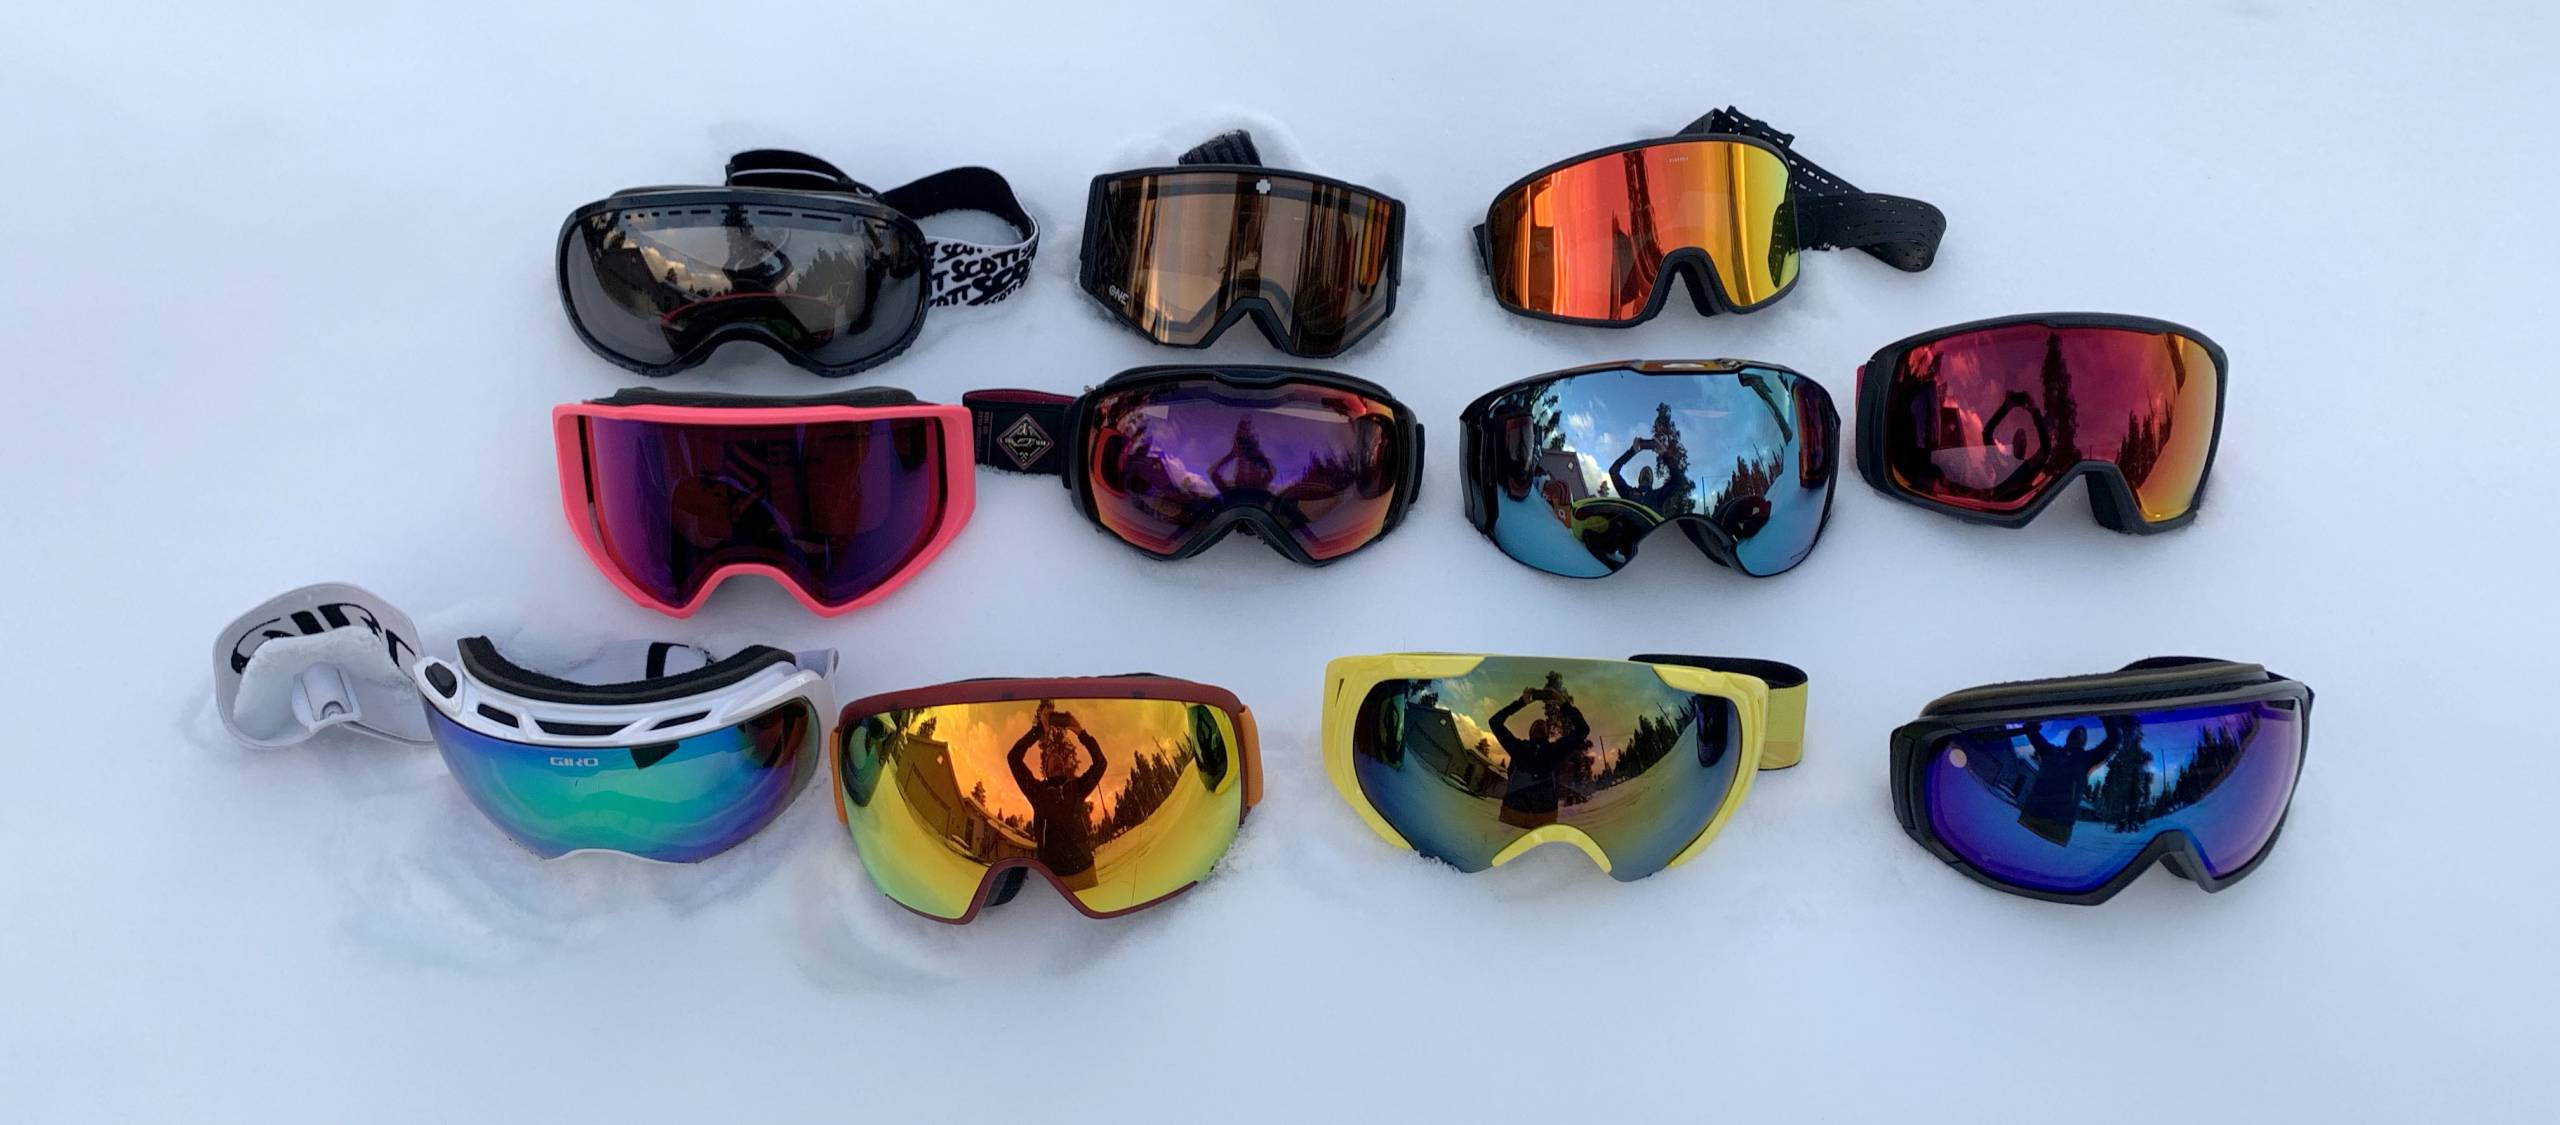 11 pairs of snow goggles